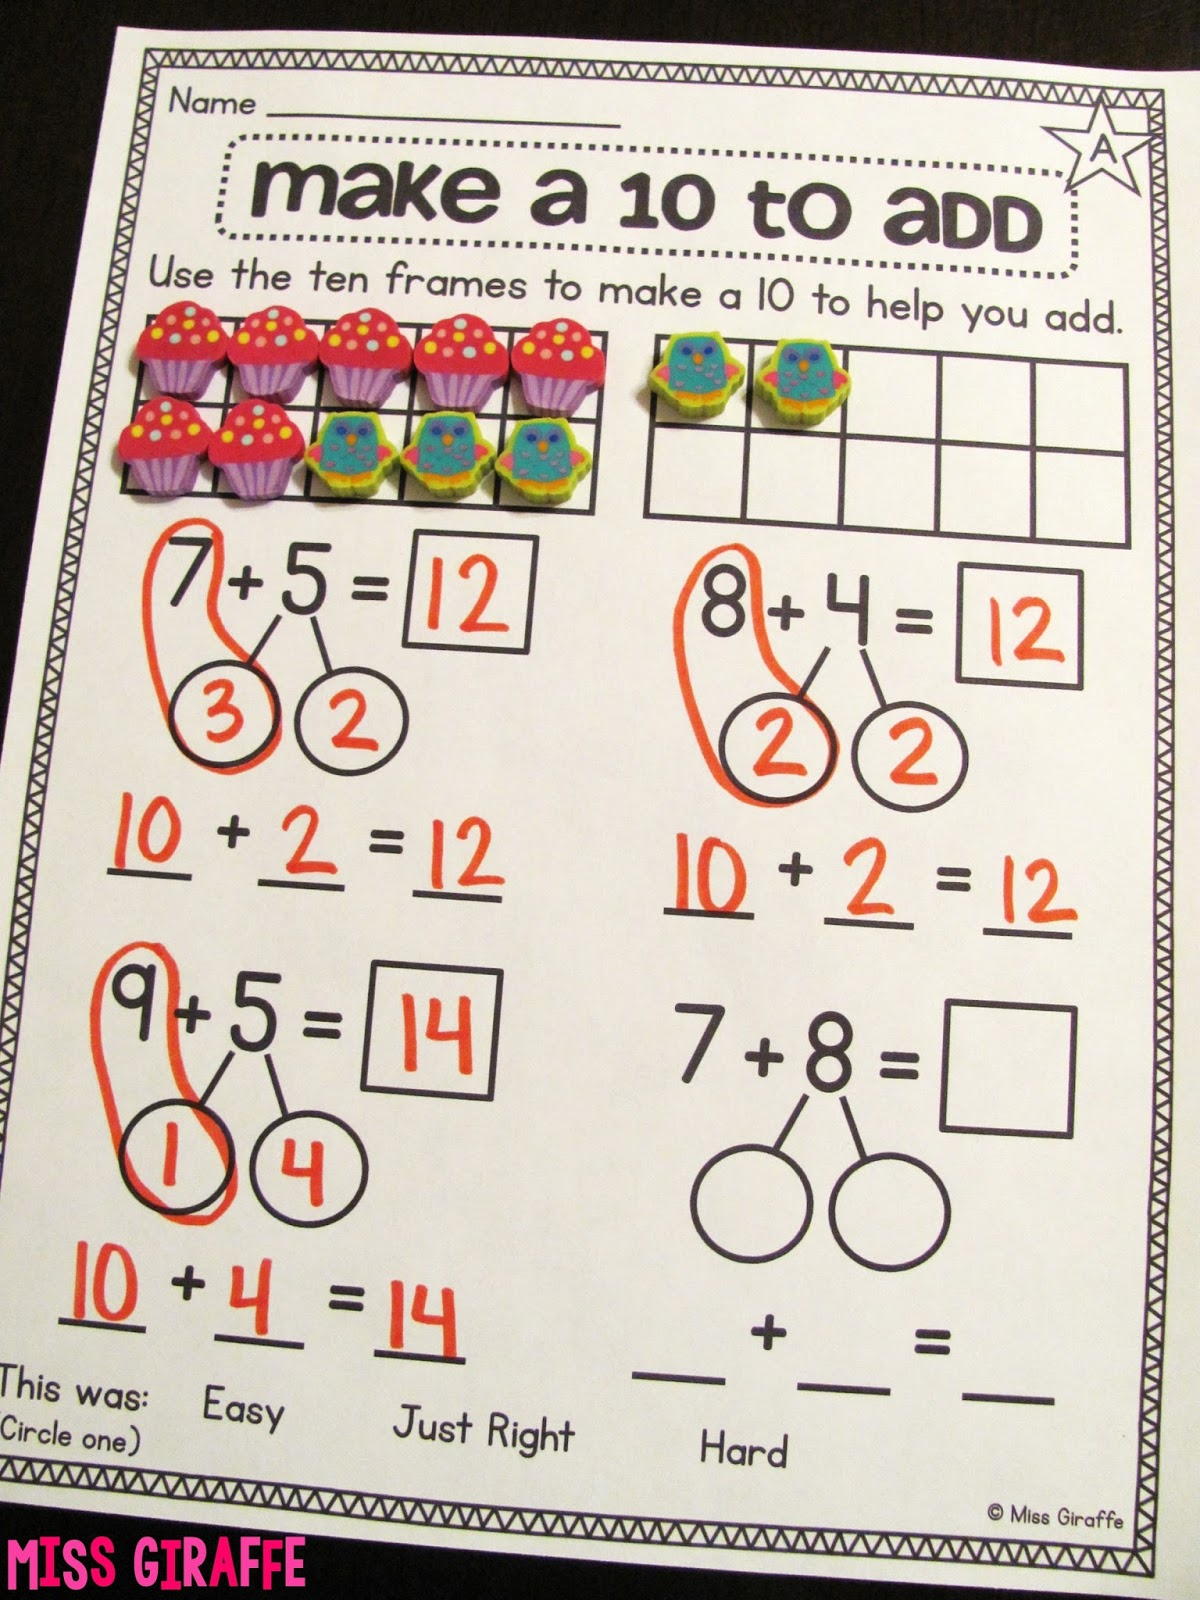 Miss Giraffes Class Making a 10 to Add – Tens Frames Worksheets